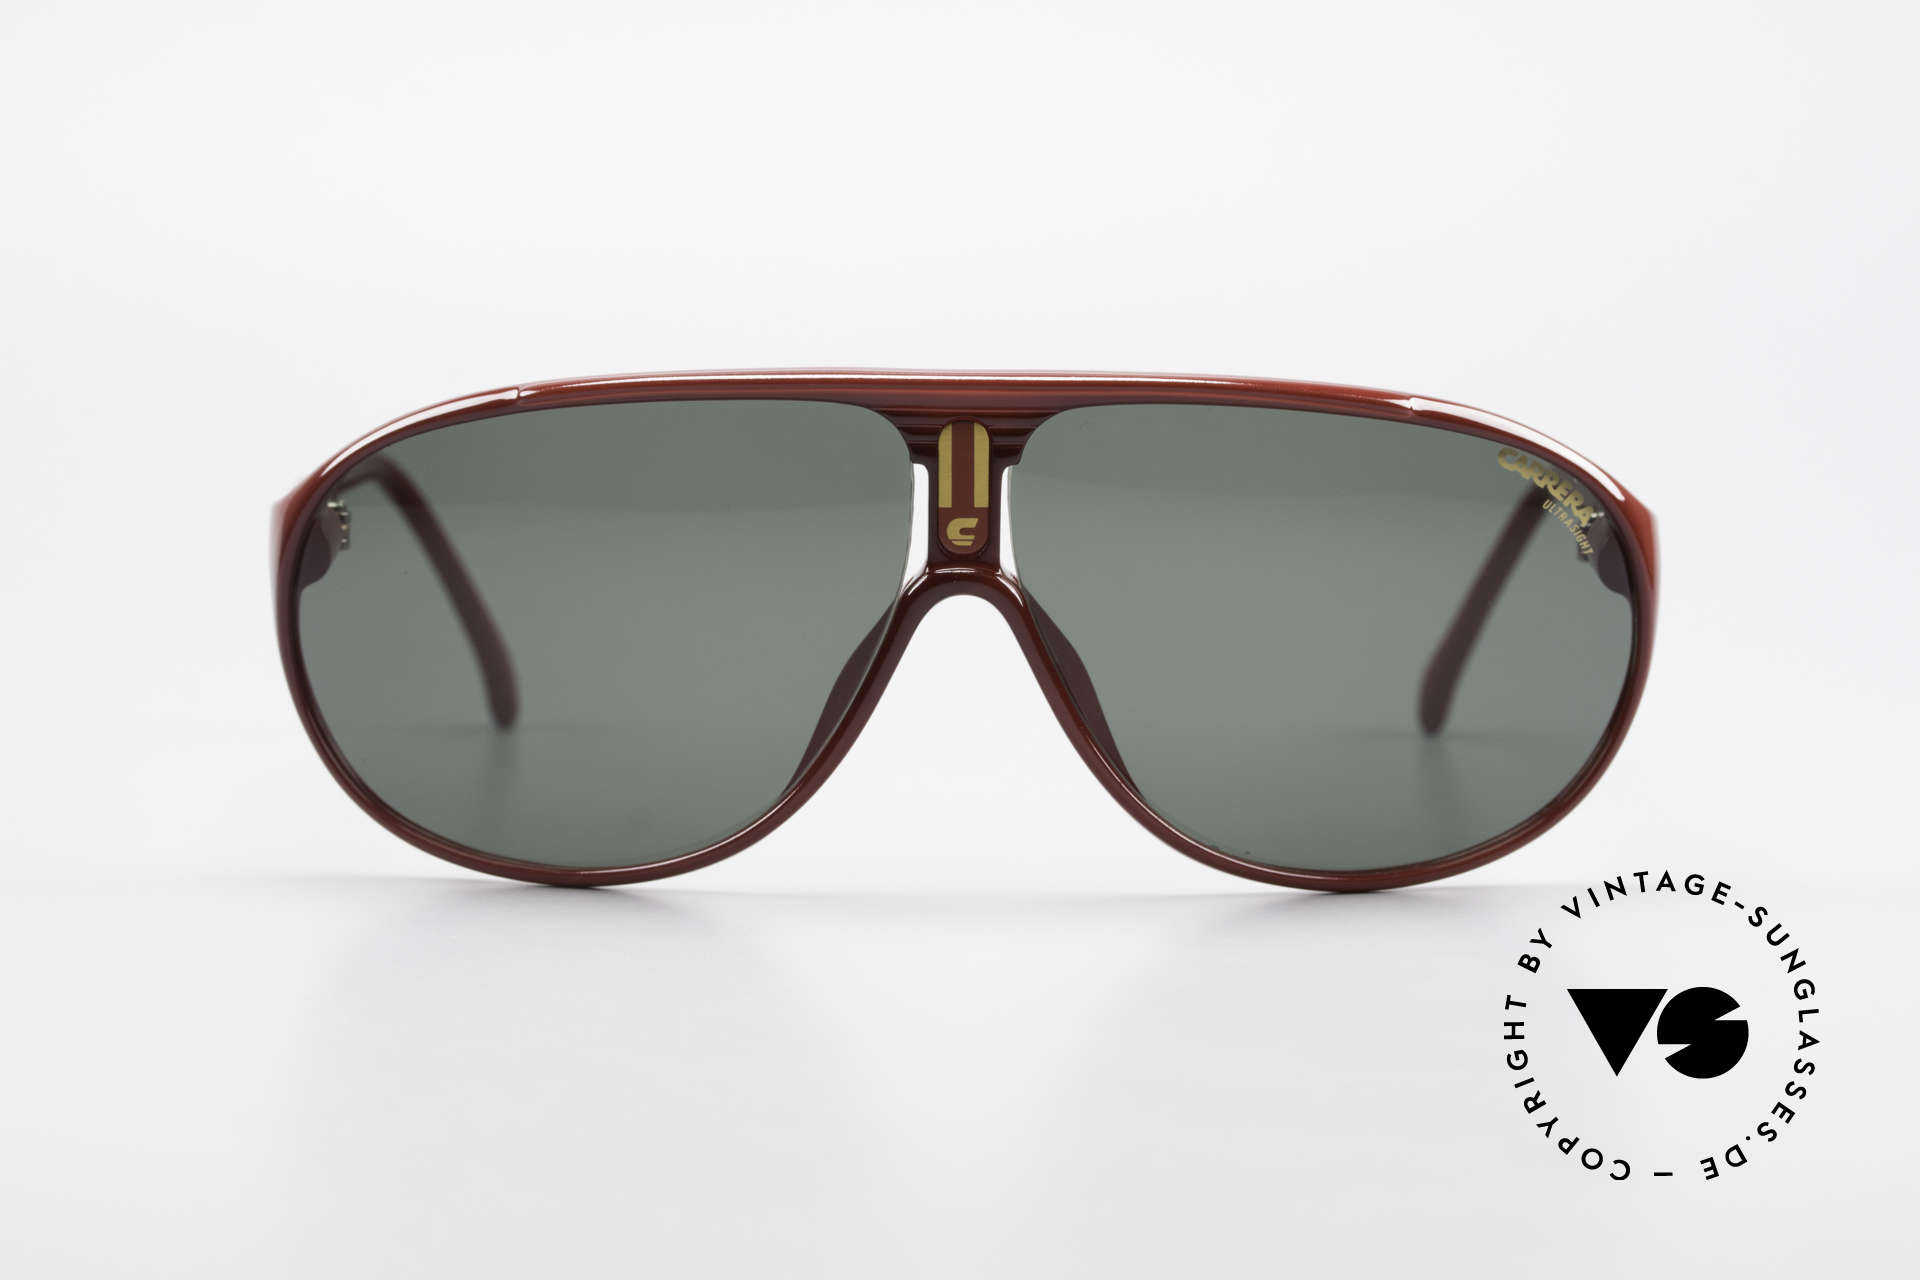 Carrera 5412 3 Sets Of Different Sun Lenses, frame made of durable and long-living OPTYL material, Made for Men and Women